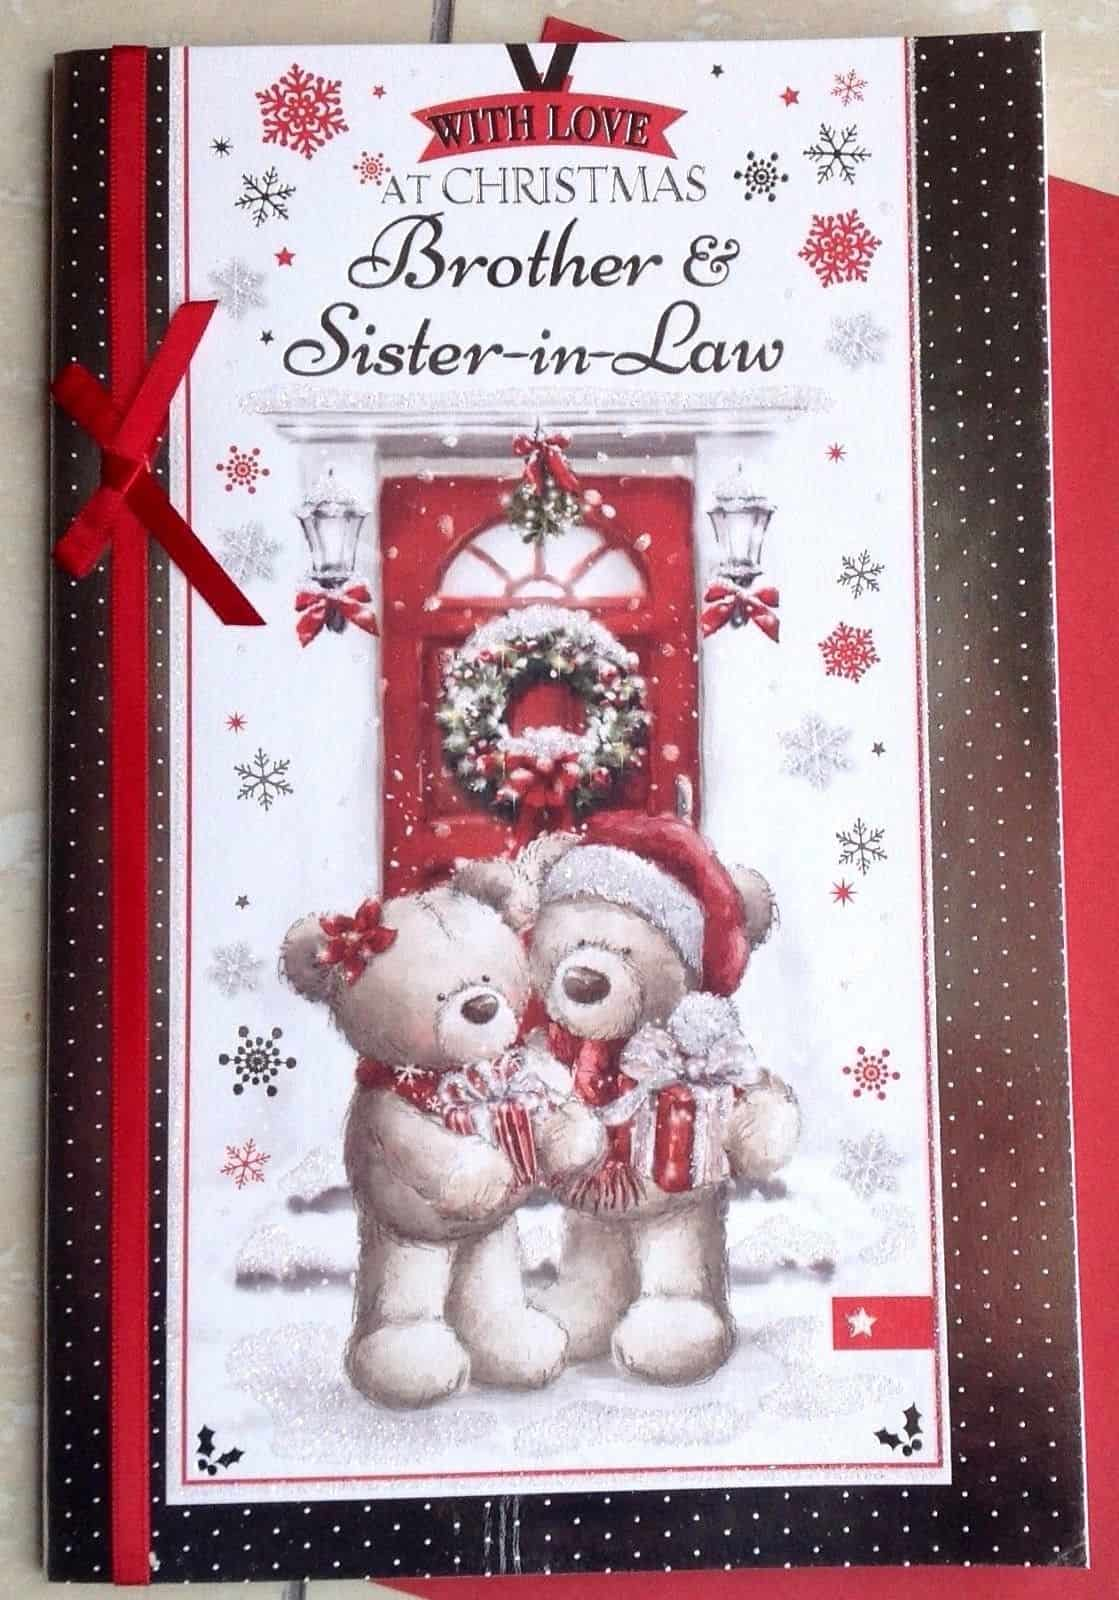 Christmas Gifts For Brother And Sister In Law.Brother Sister In Law Christmas Card